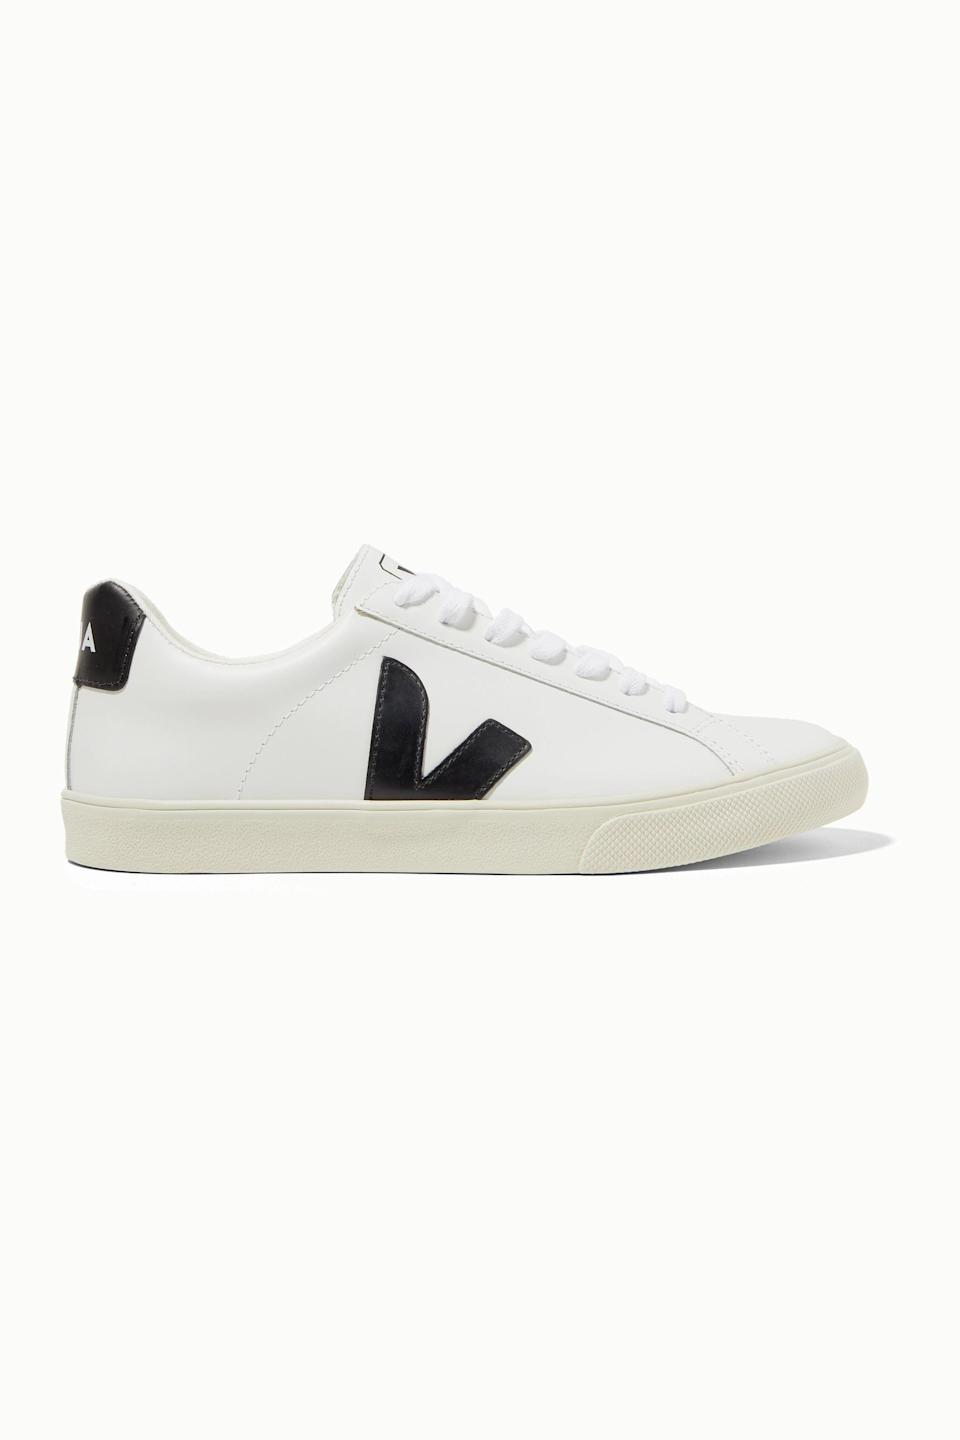 """<p><strong>Veja</strong></p><p>net-a-porter.com</p><p><strong>$120.00</strong></p><p><a href=""""https://go.redirectingat.com?id=74968X1596630&url=https%3A%2F%2Fwww.net-a-porter.com%2Fen-us%2Fshop%2Fproduct%2Fveja%2Fnet-sustain-esplar-rubber-trimmed-leather-sneakers%2F1187329&sref=https%3A%2F%2Fwww.cosmopolitan.com%2Fstyle-beauty%2Ffashion%2Fg13602855%2Fbest-gift-ideas-for-women%2F"""" rel=""""nofollow noopener"""" target=""""_blank"""" data-ylk=""""slk:Shop Now"""" class=""""link rapid-noclick-resp"""">Shop Now</a></p><p>For the casual kick-wearing folks, these clean sneakers by Veja will be right at the top of their wish list.</p>"""